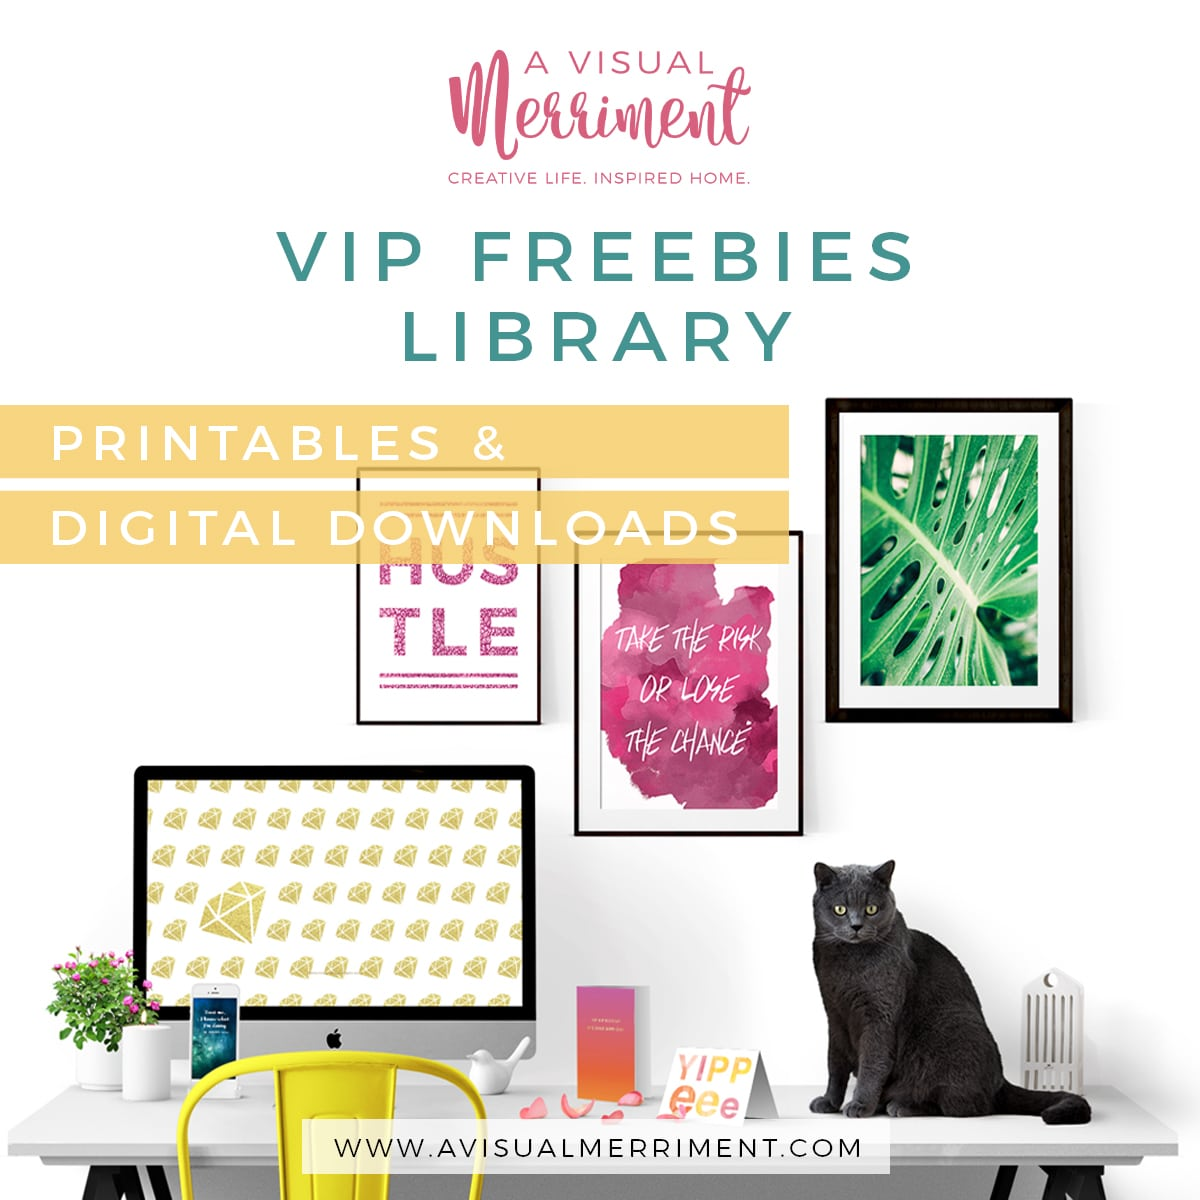 VIP freebies library with printable and digital downloads